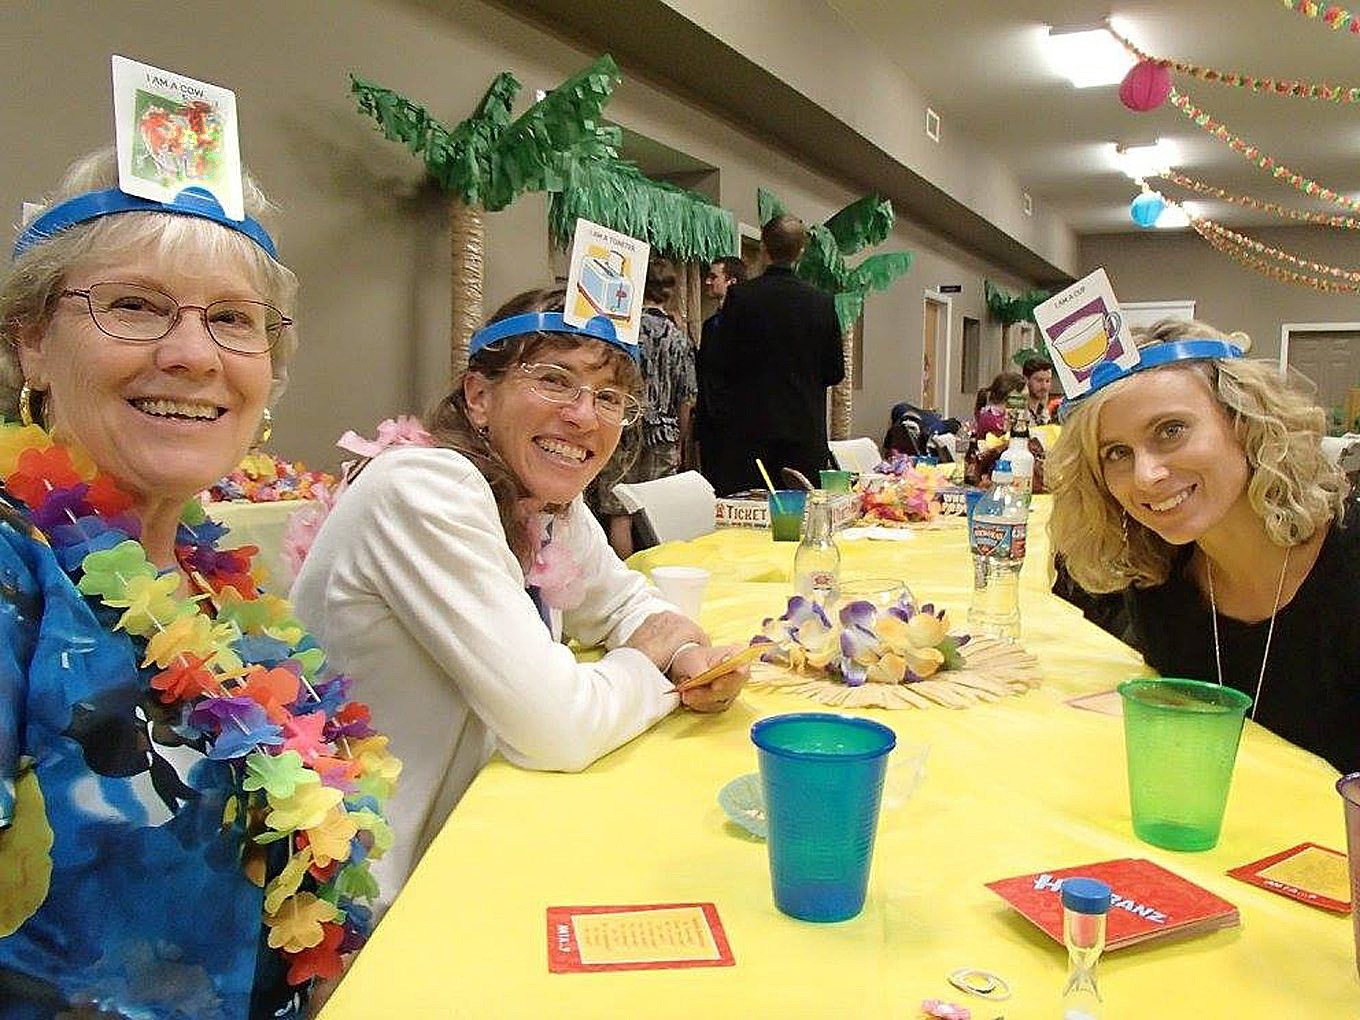 Left to right: Diane Oliver, Berenice Emehiser and Becky Oliver enjoy a game of Headbanz at the Luau.